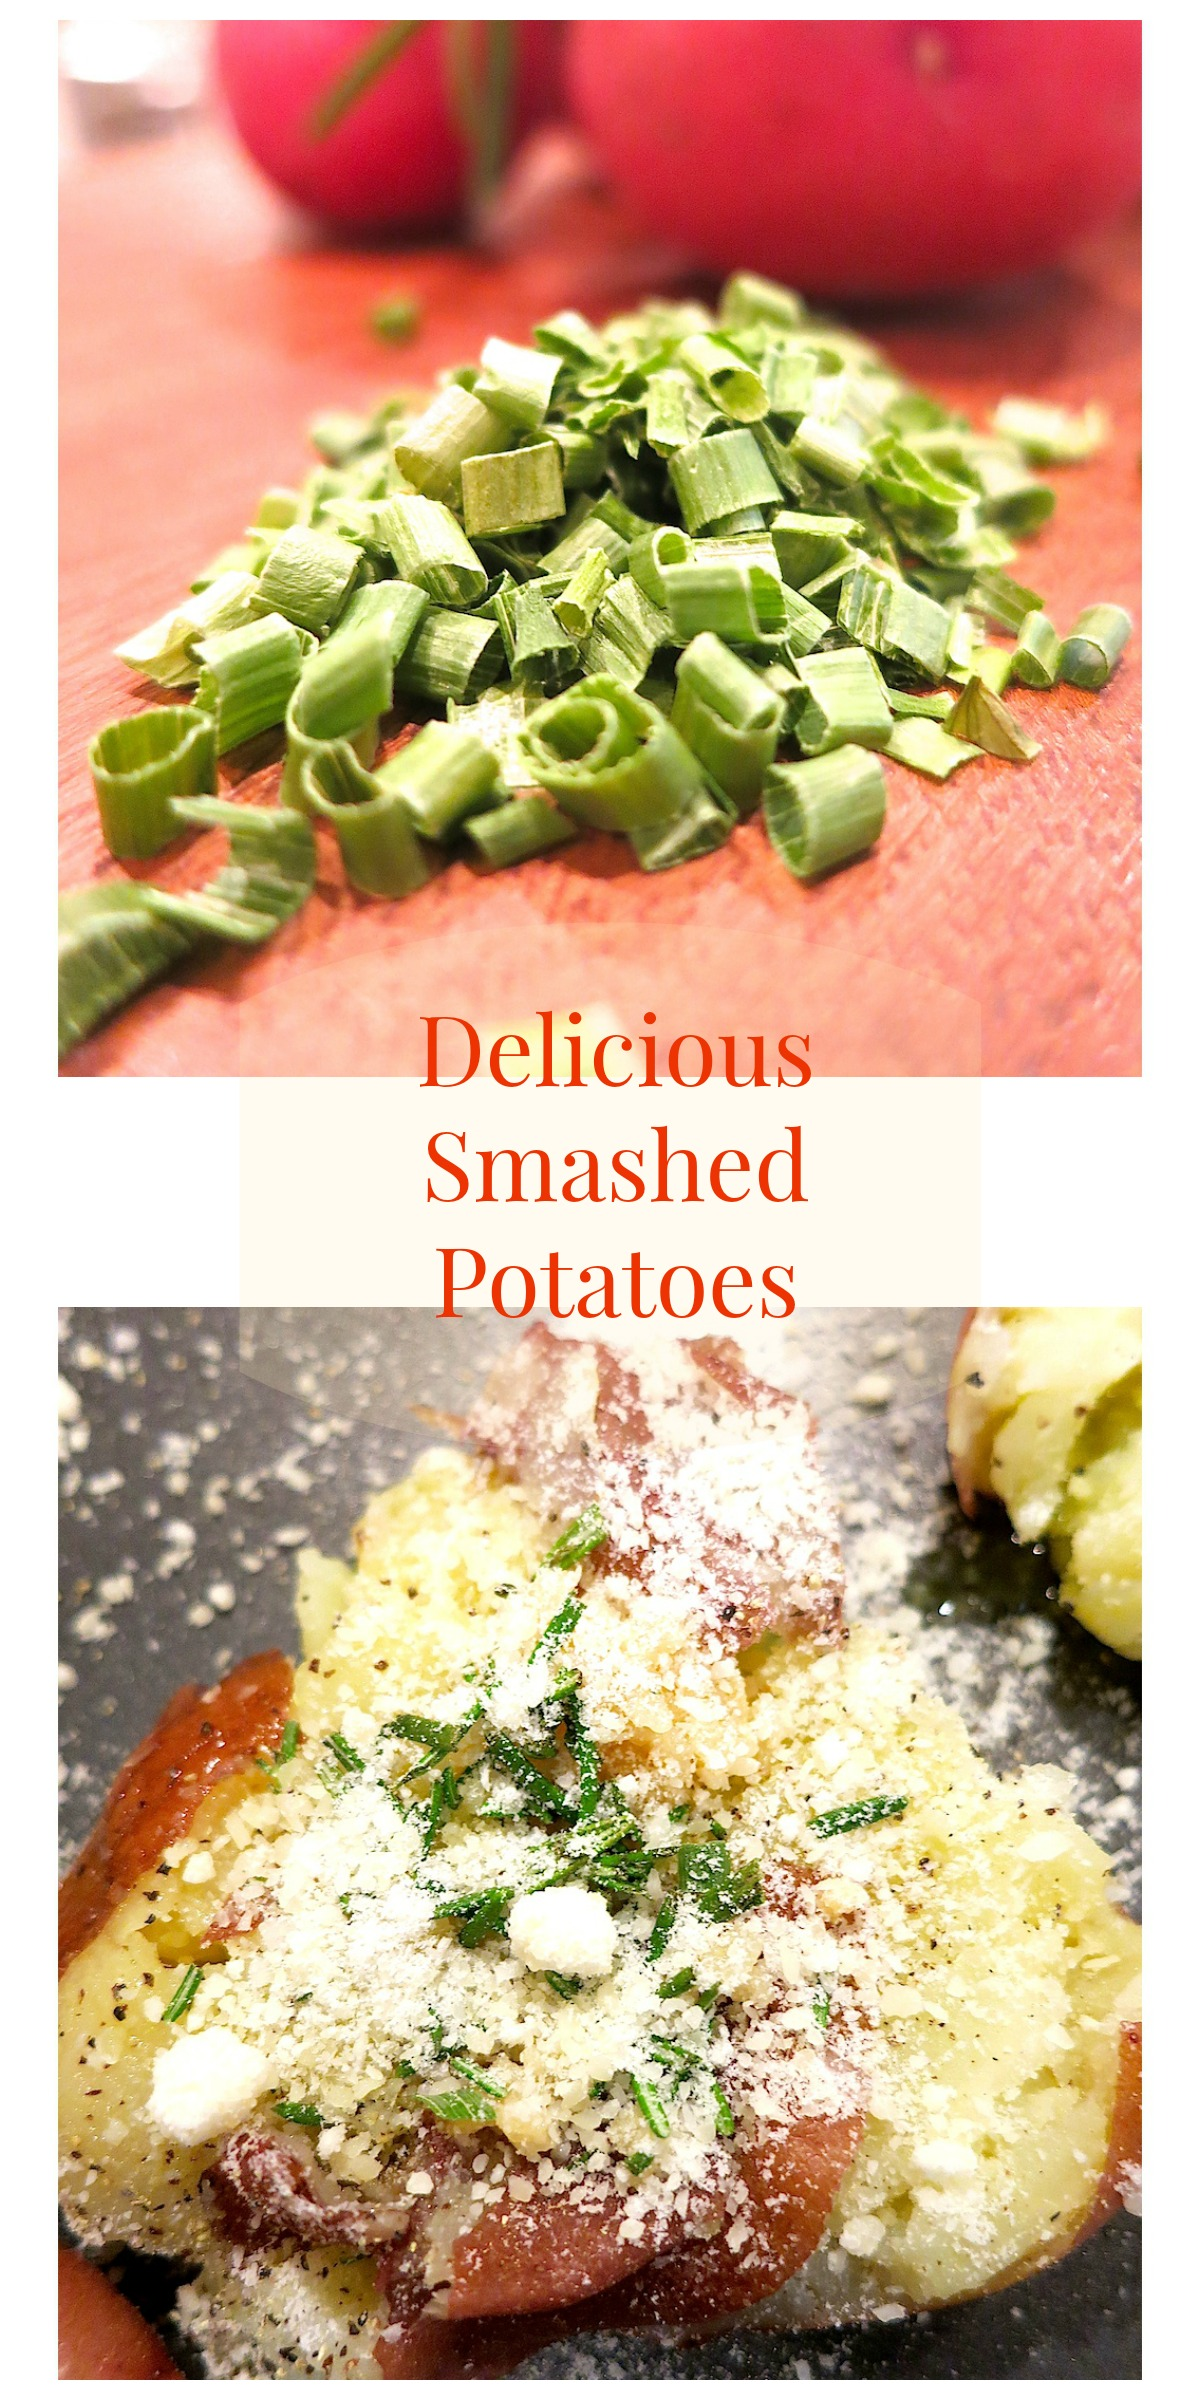 Smashed Potatoes…super easy to make and very delicious!